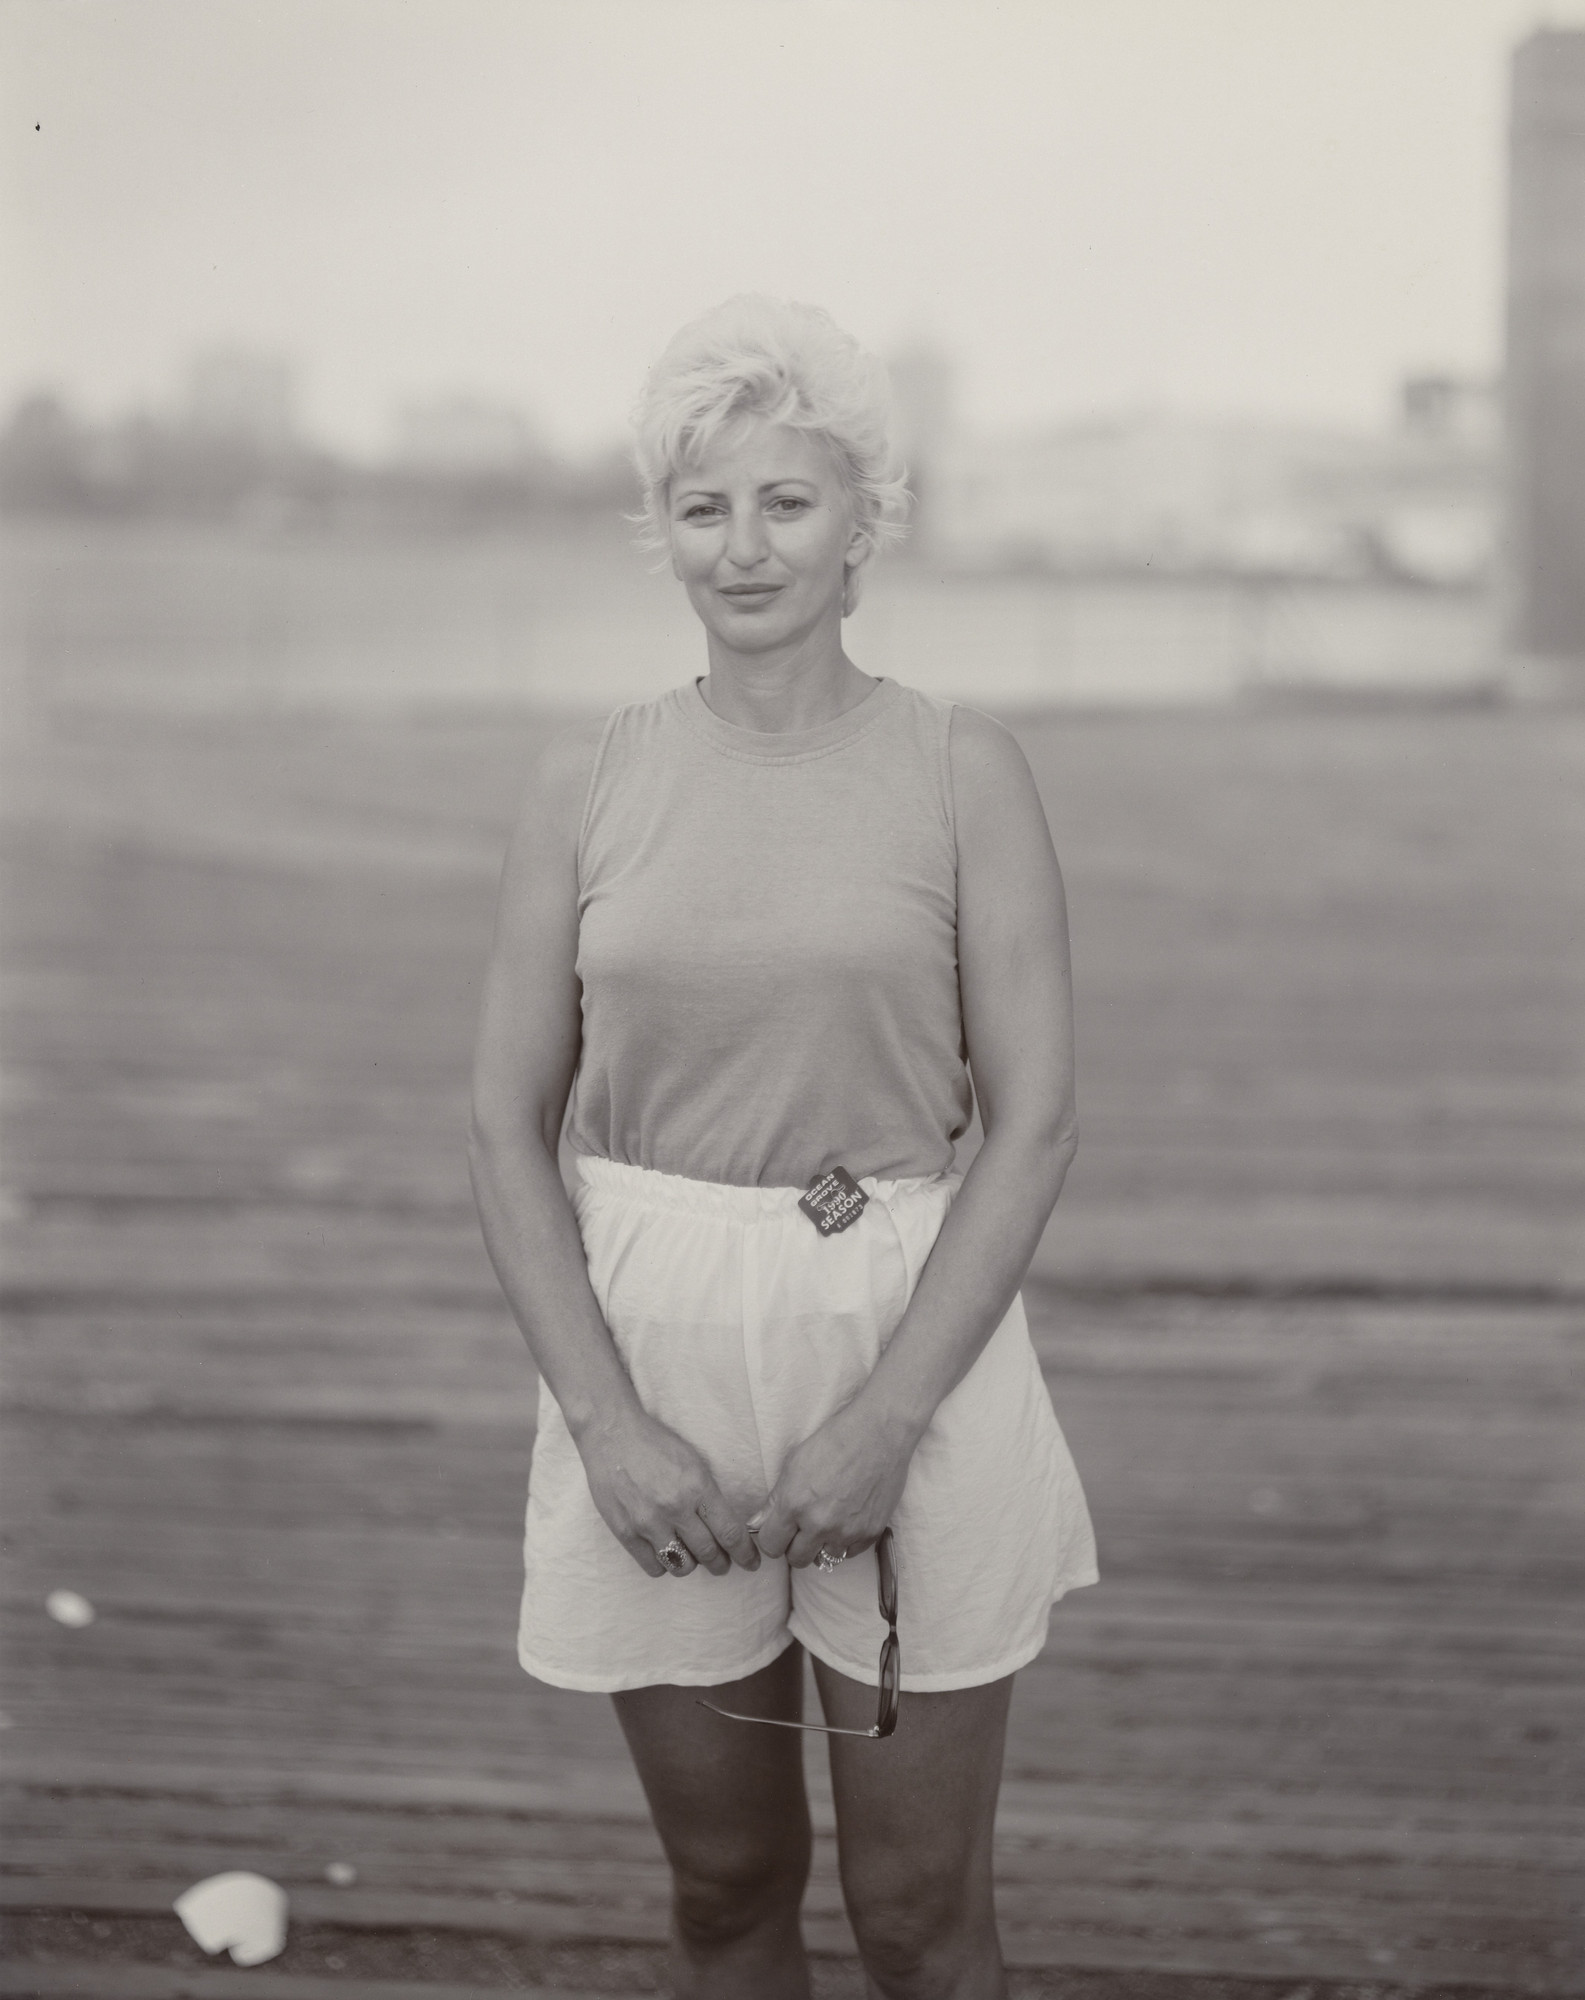 Judith Joy Ross. Blond Woman, Asbury Park, New Jersey. 1990